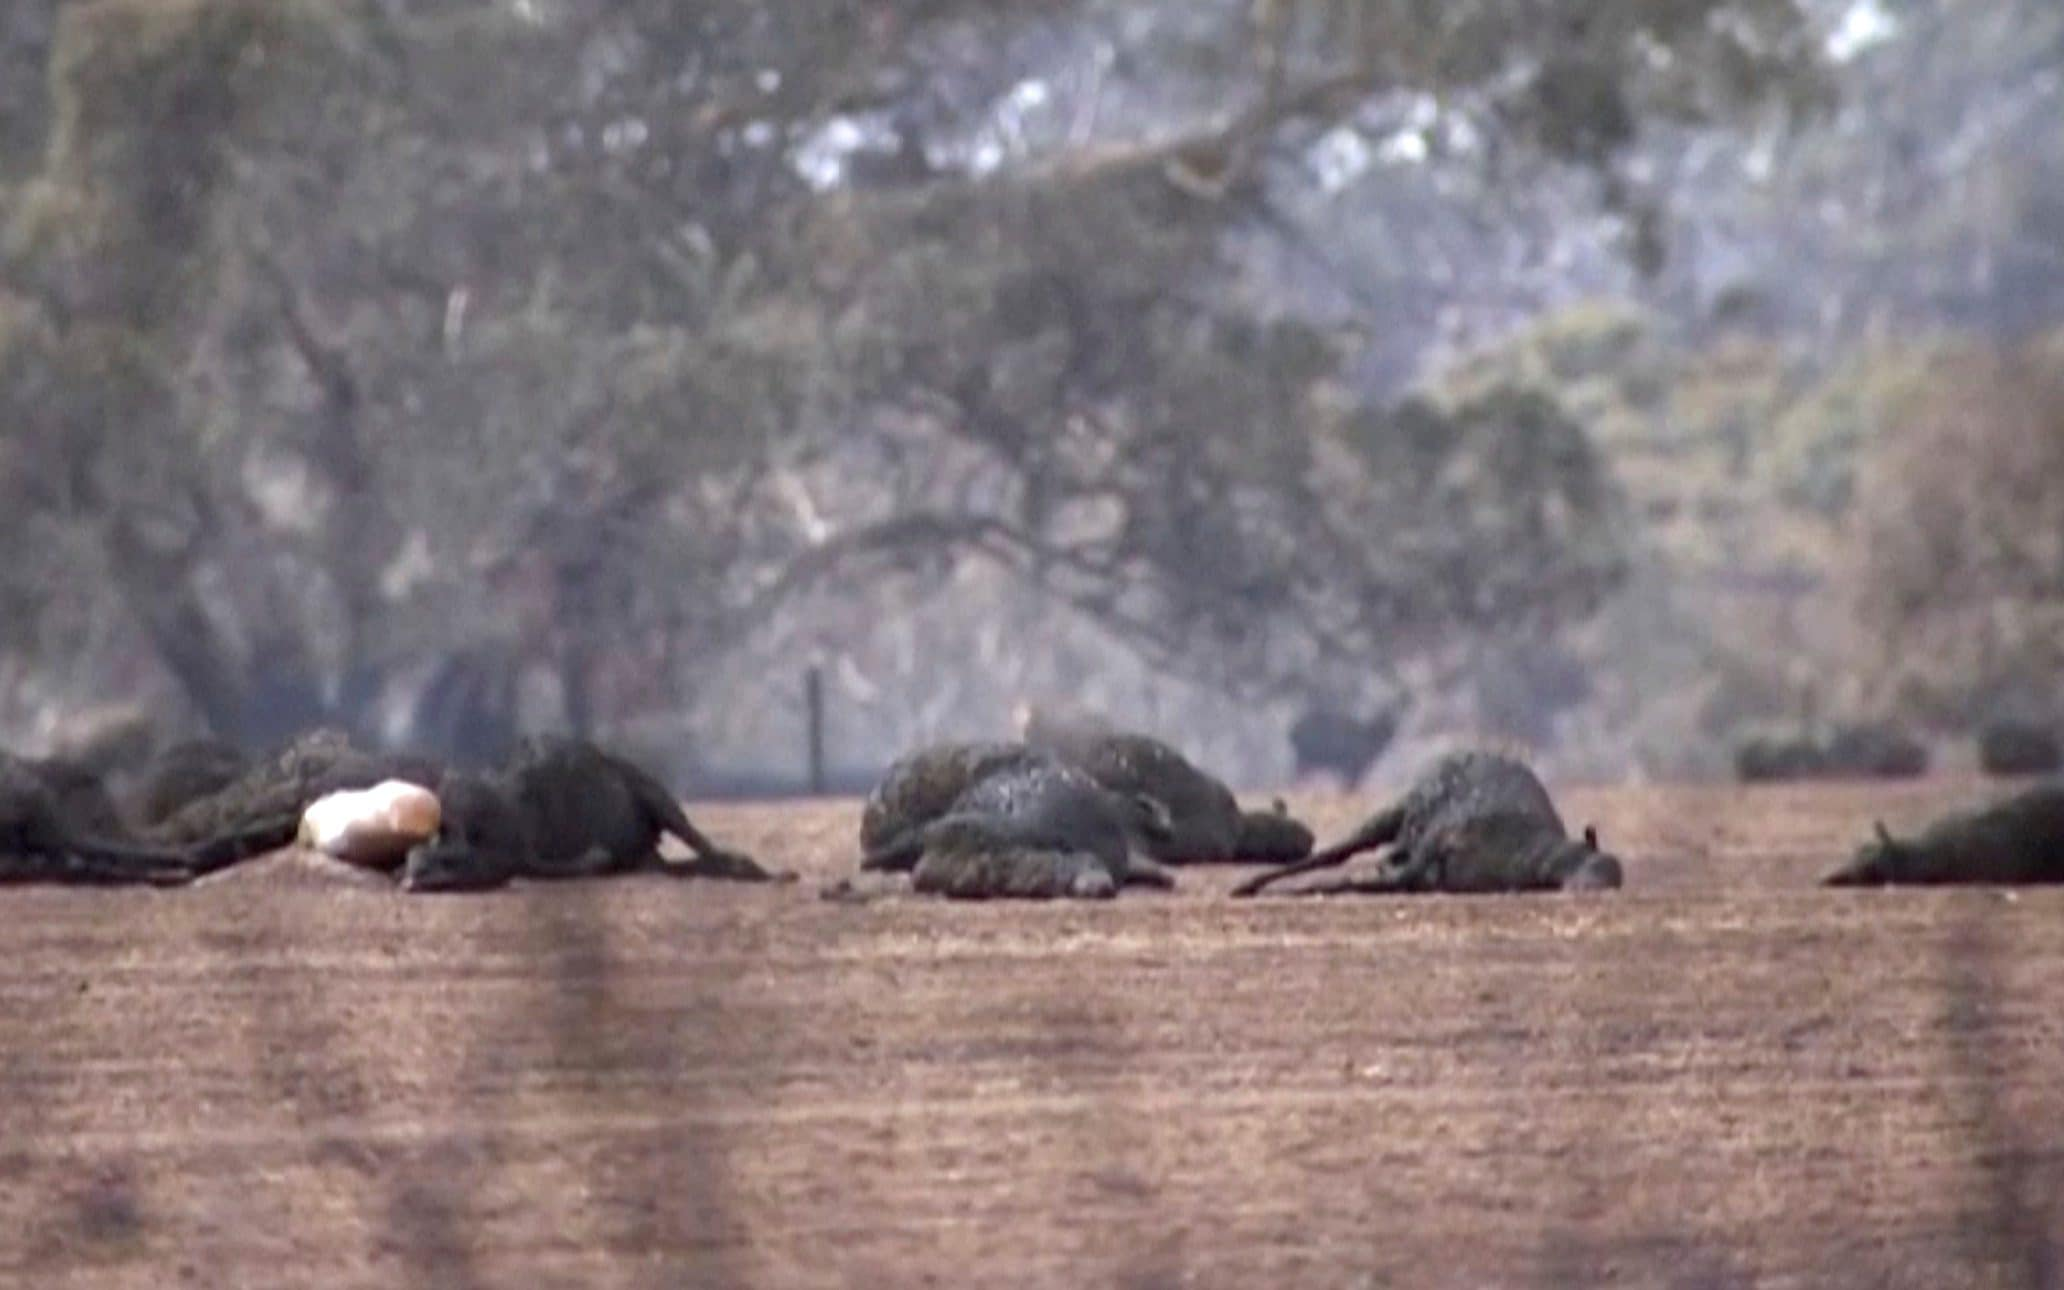 Thousands of koalas burn to death as Australia fears native wildlife may never recover from bush fire disaster